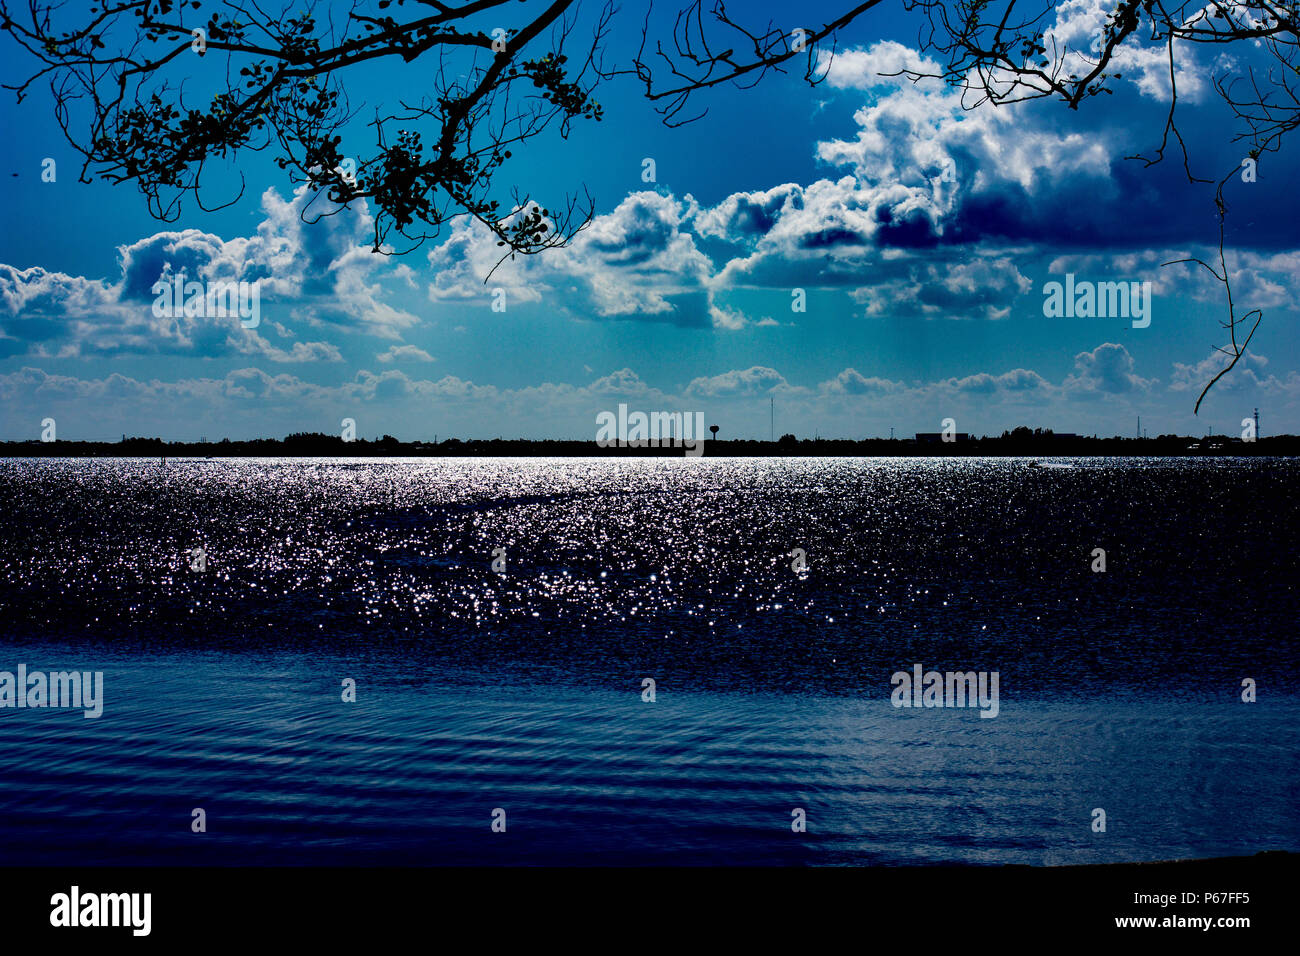 Banana river sparkling mid day in florida - Stock Image